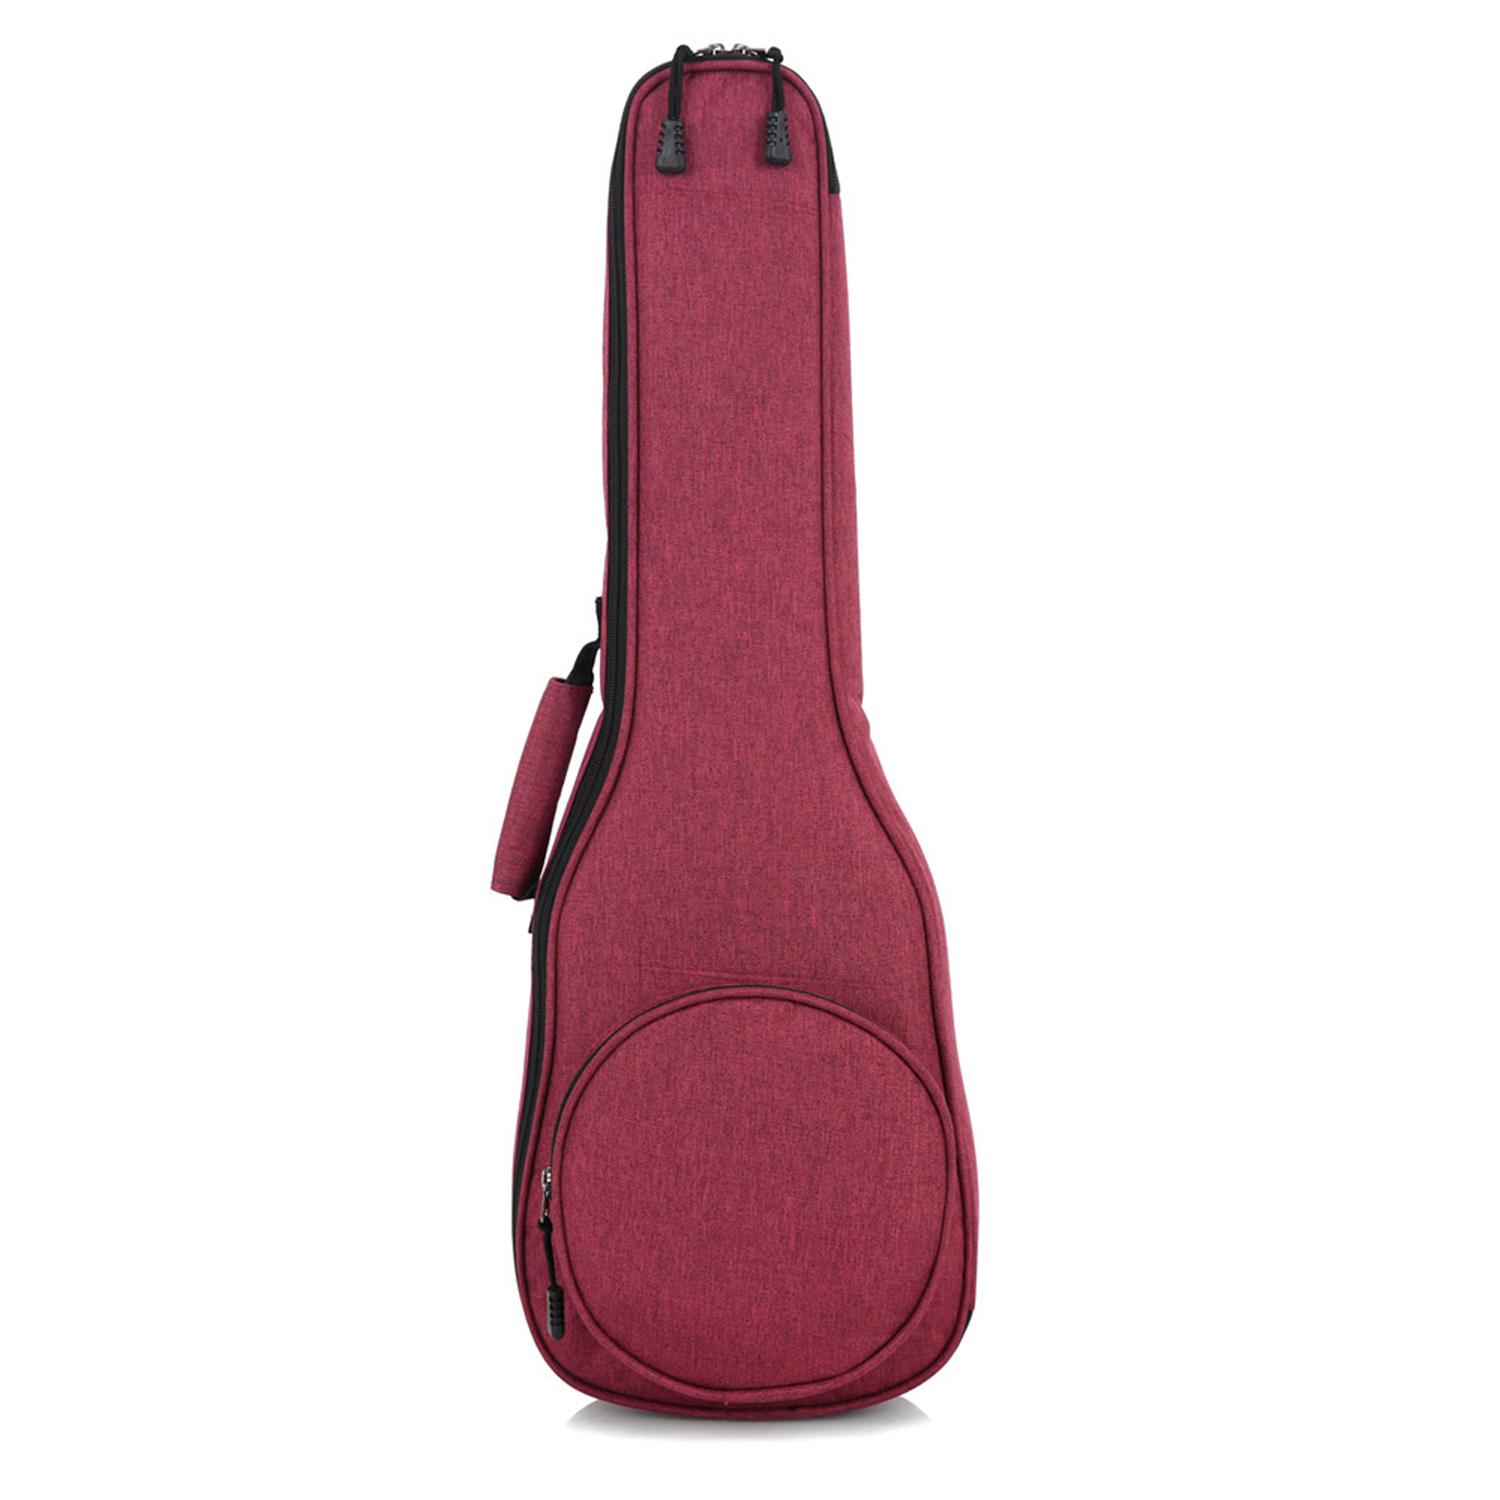 New Cotton Ukulele Bag Soft Case Gig Waterproof Oxford Cloth Ukelele Hawaii Four String Guitar BackpackNew Cotton Ukulele Bag Soft Case Gig Waterproof Oxford Cloth Ukelele Hawaii Four String Guitar Backpack